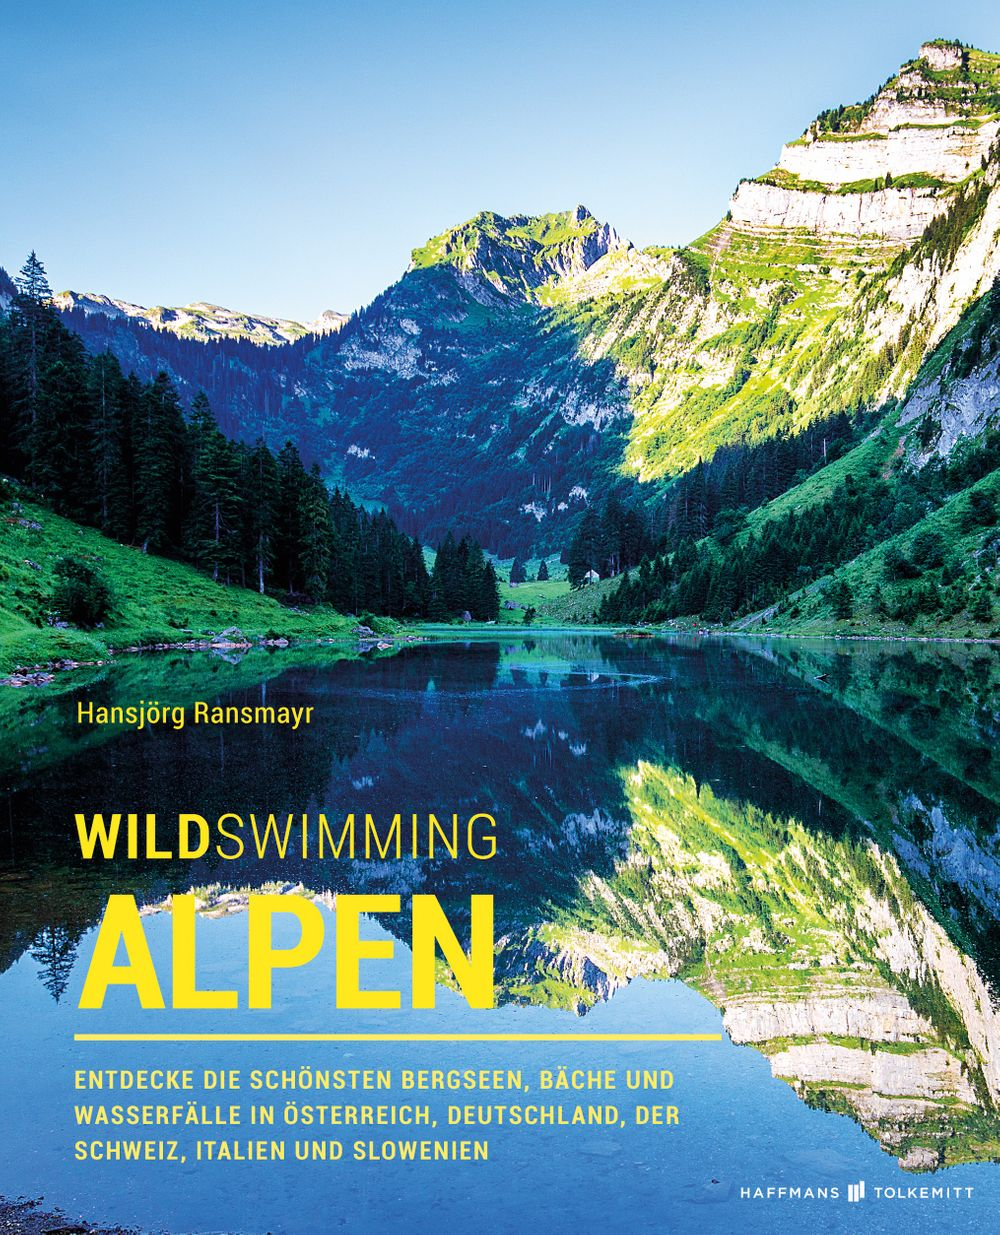 «Wildswimming Alpen»